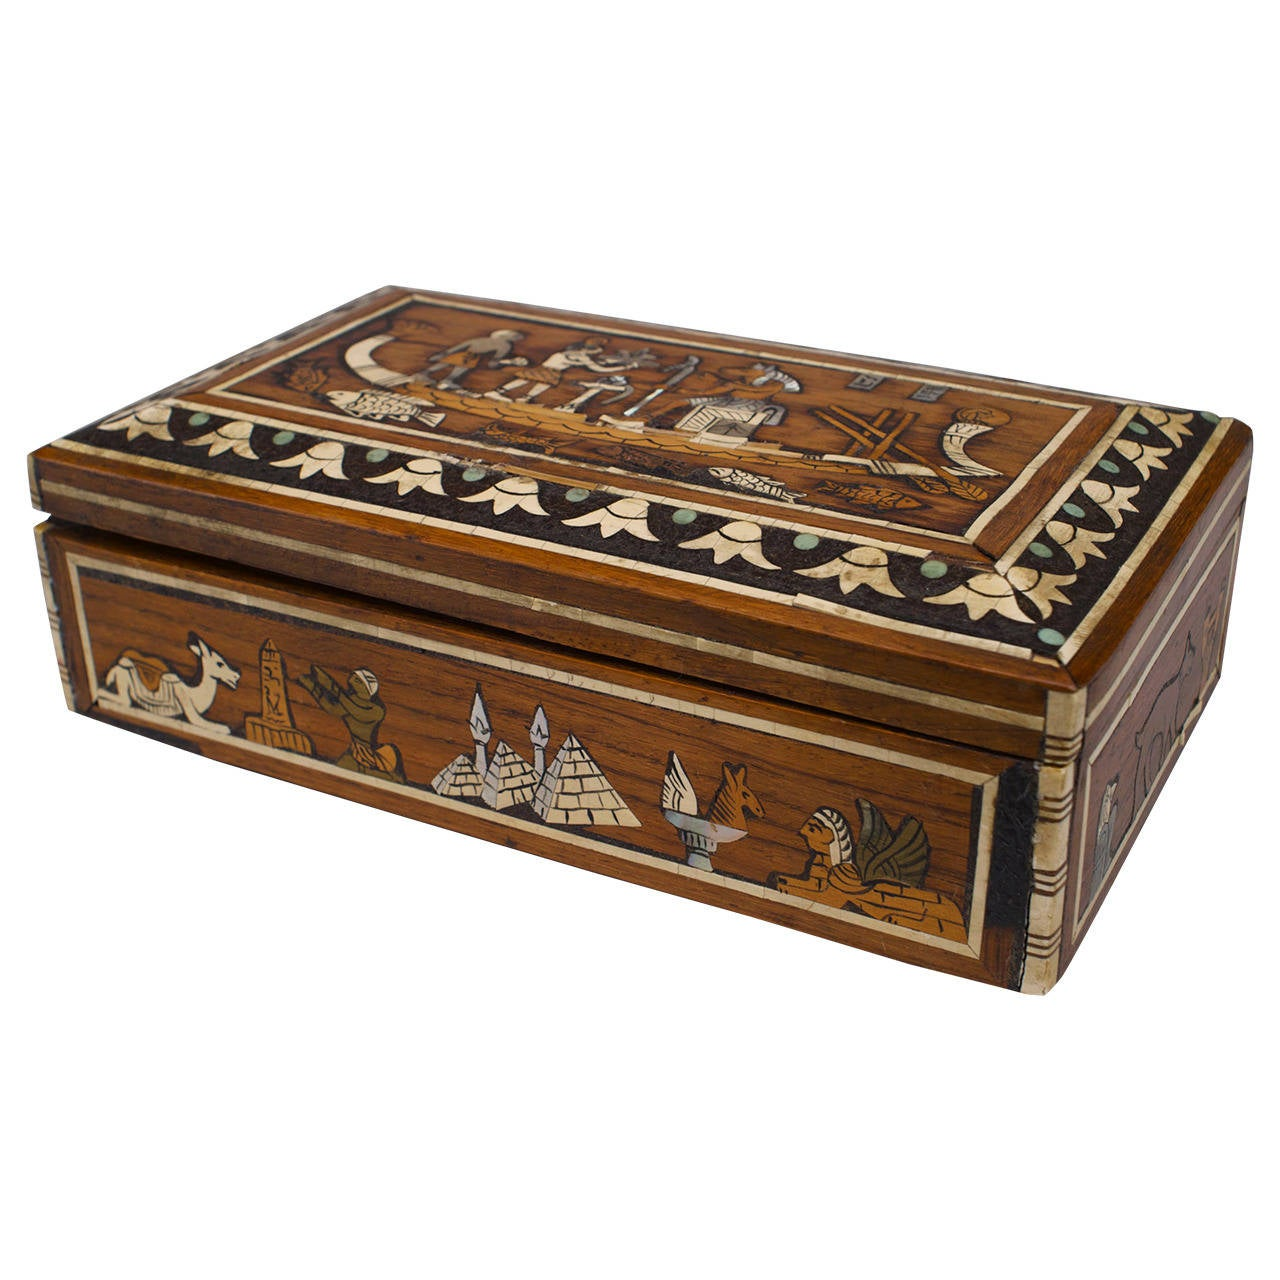 Middle Eastern Egyptian Revival Inlaid Box, Circa 1900 1